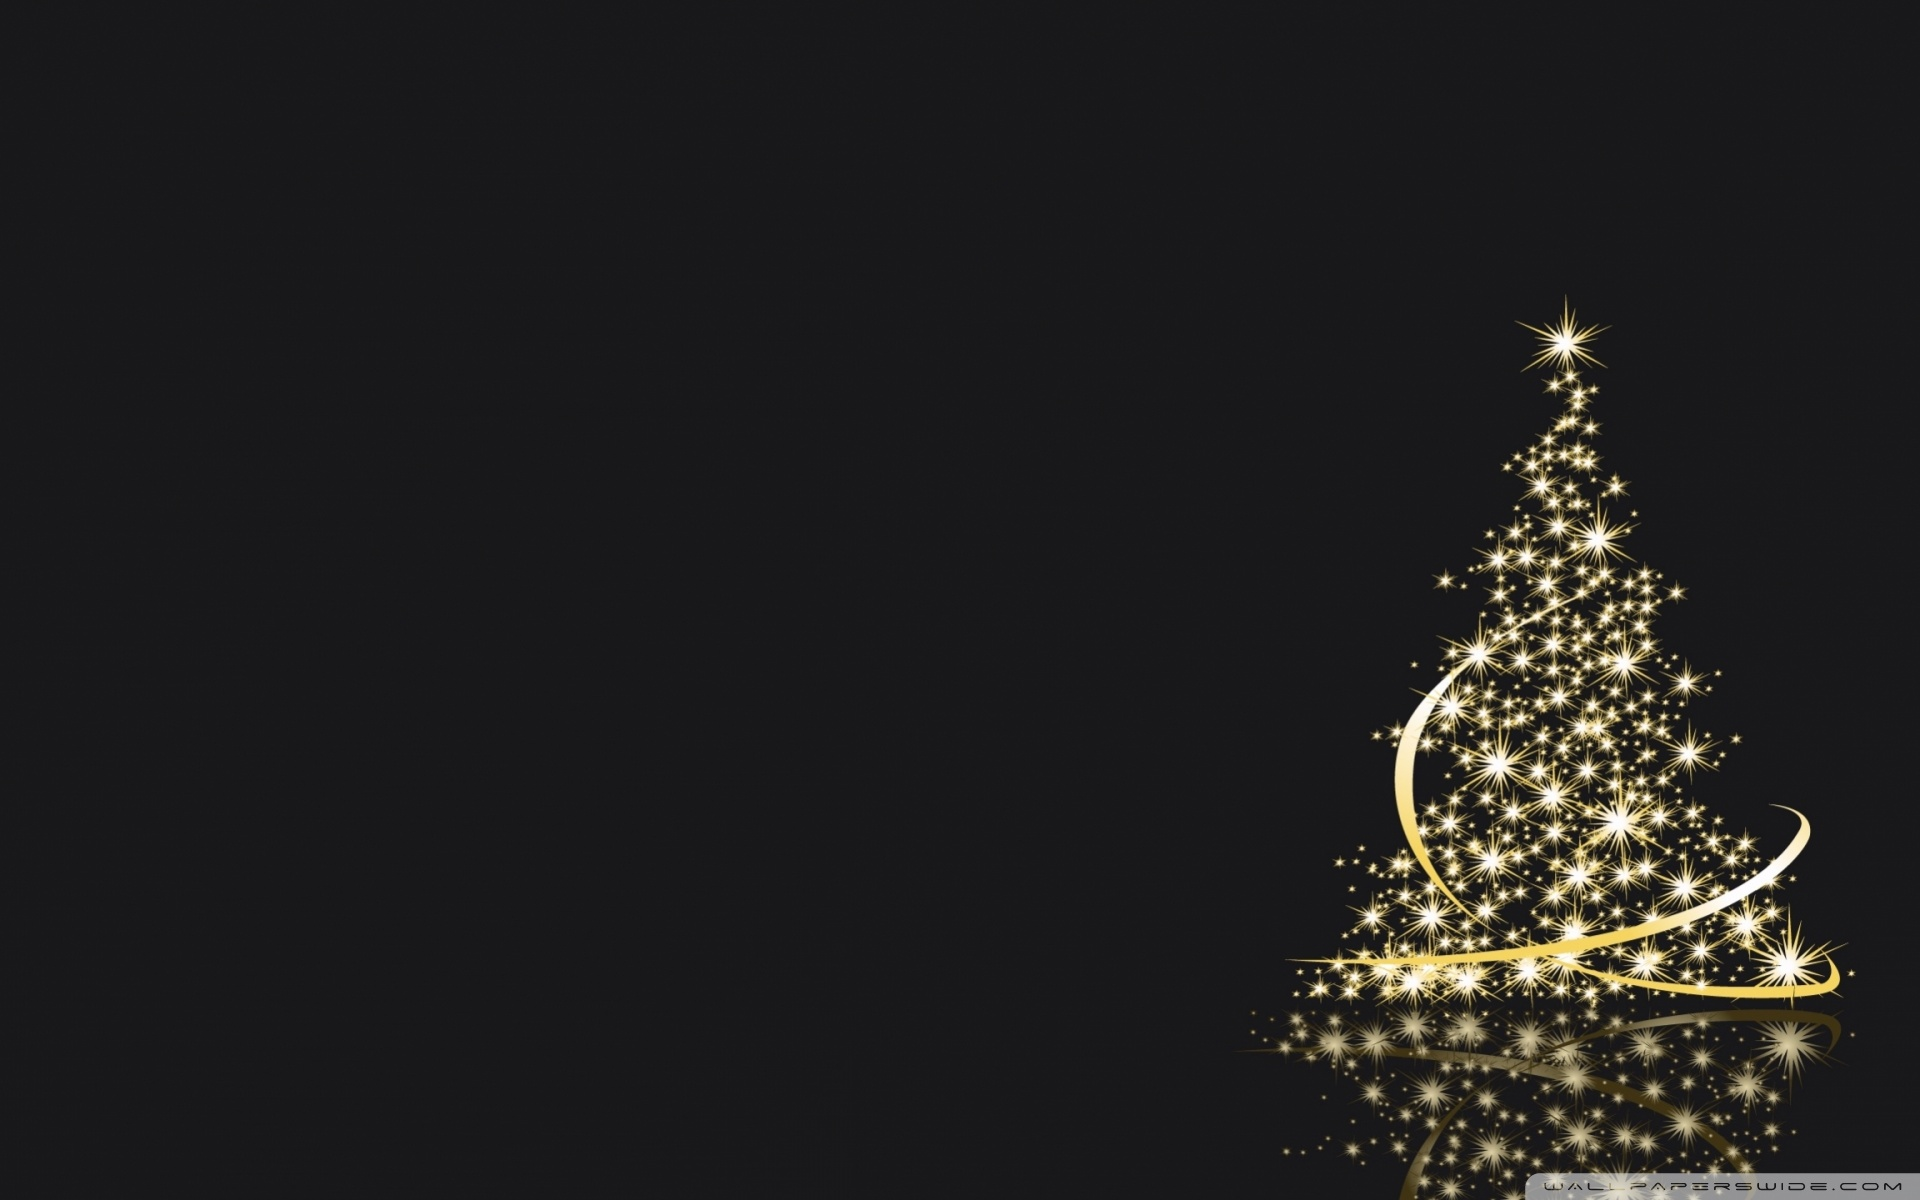 Top 10 Christmas Wallpapers for Ubuntu Desktop 1920x1200